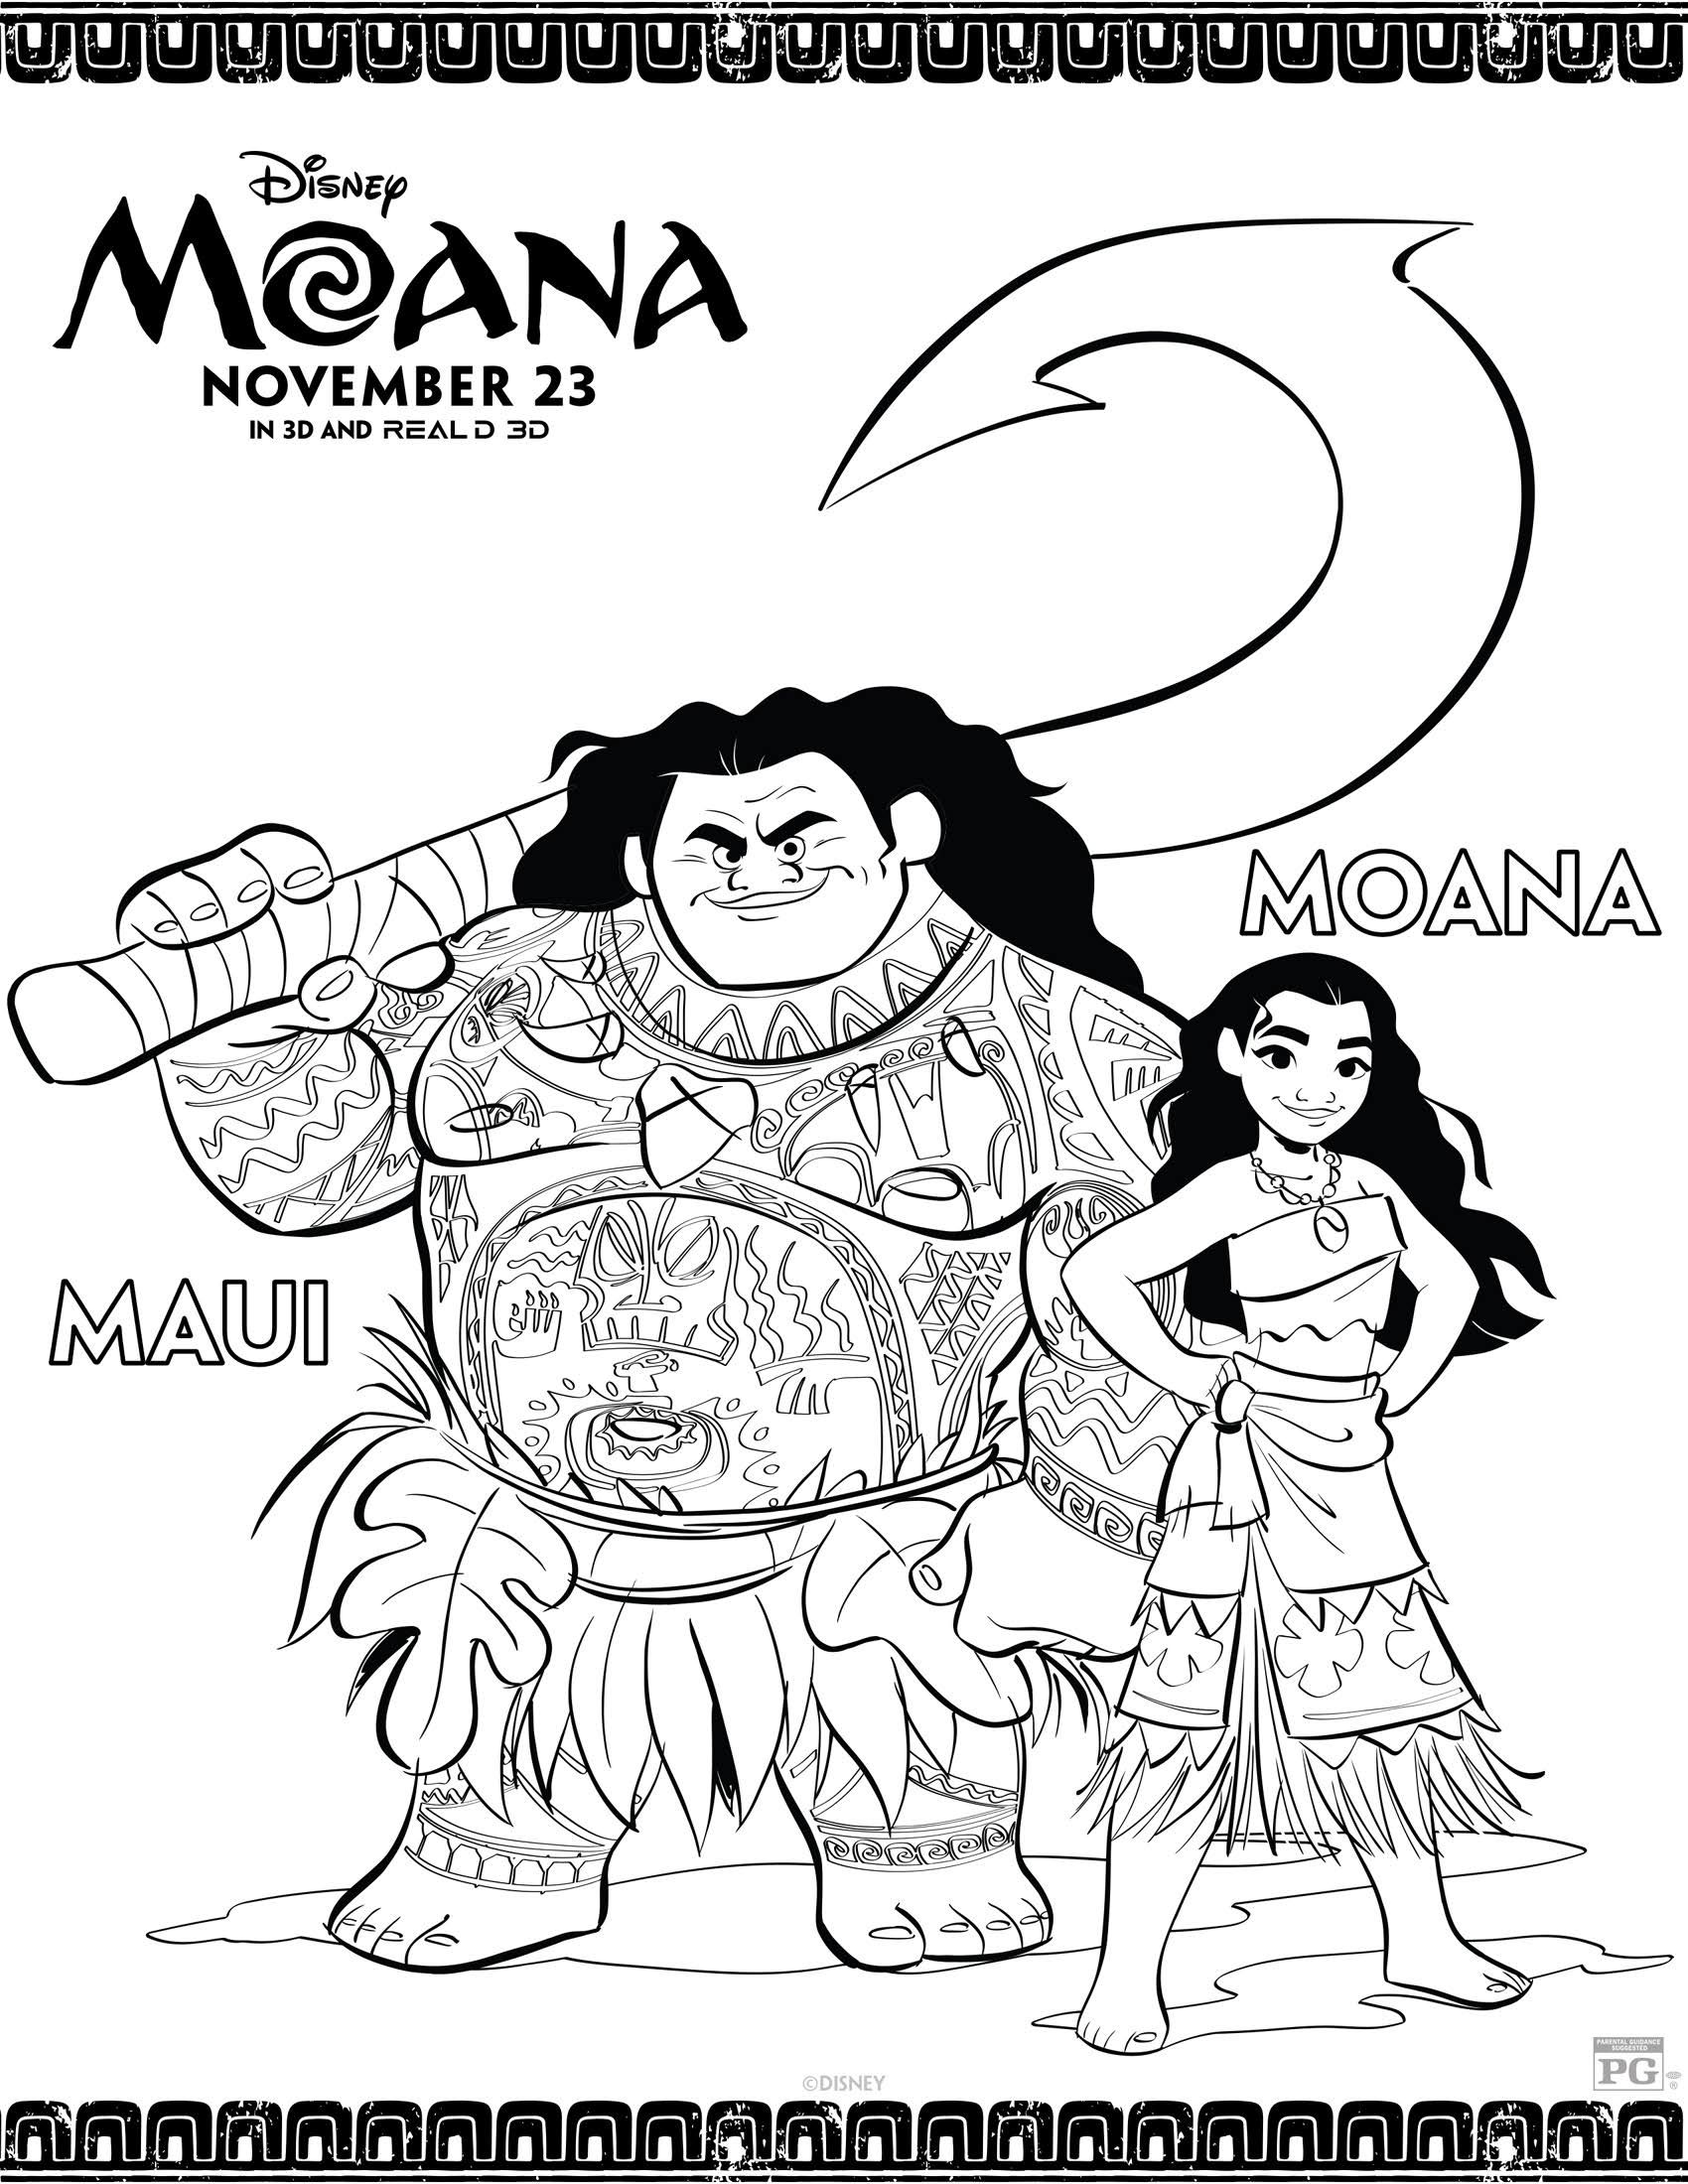 moana drawing: 25 тыс изображений найдено в Яндекс.Картинках | art ...